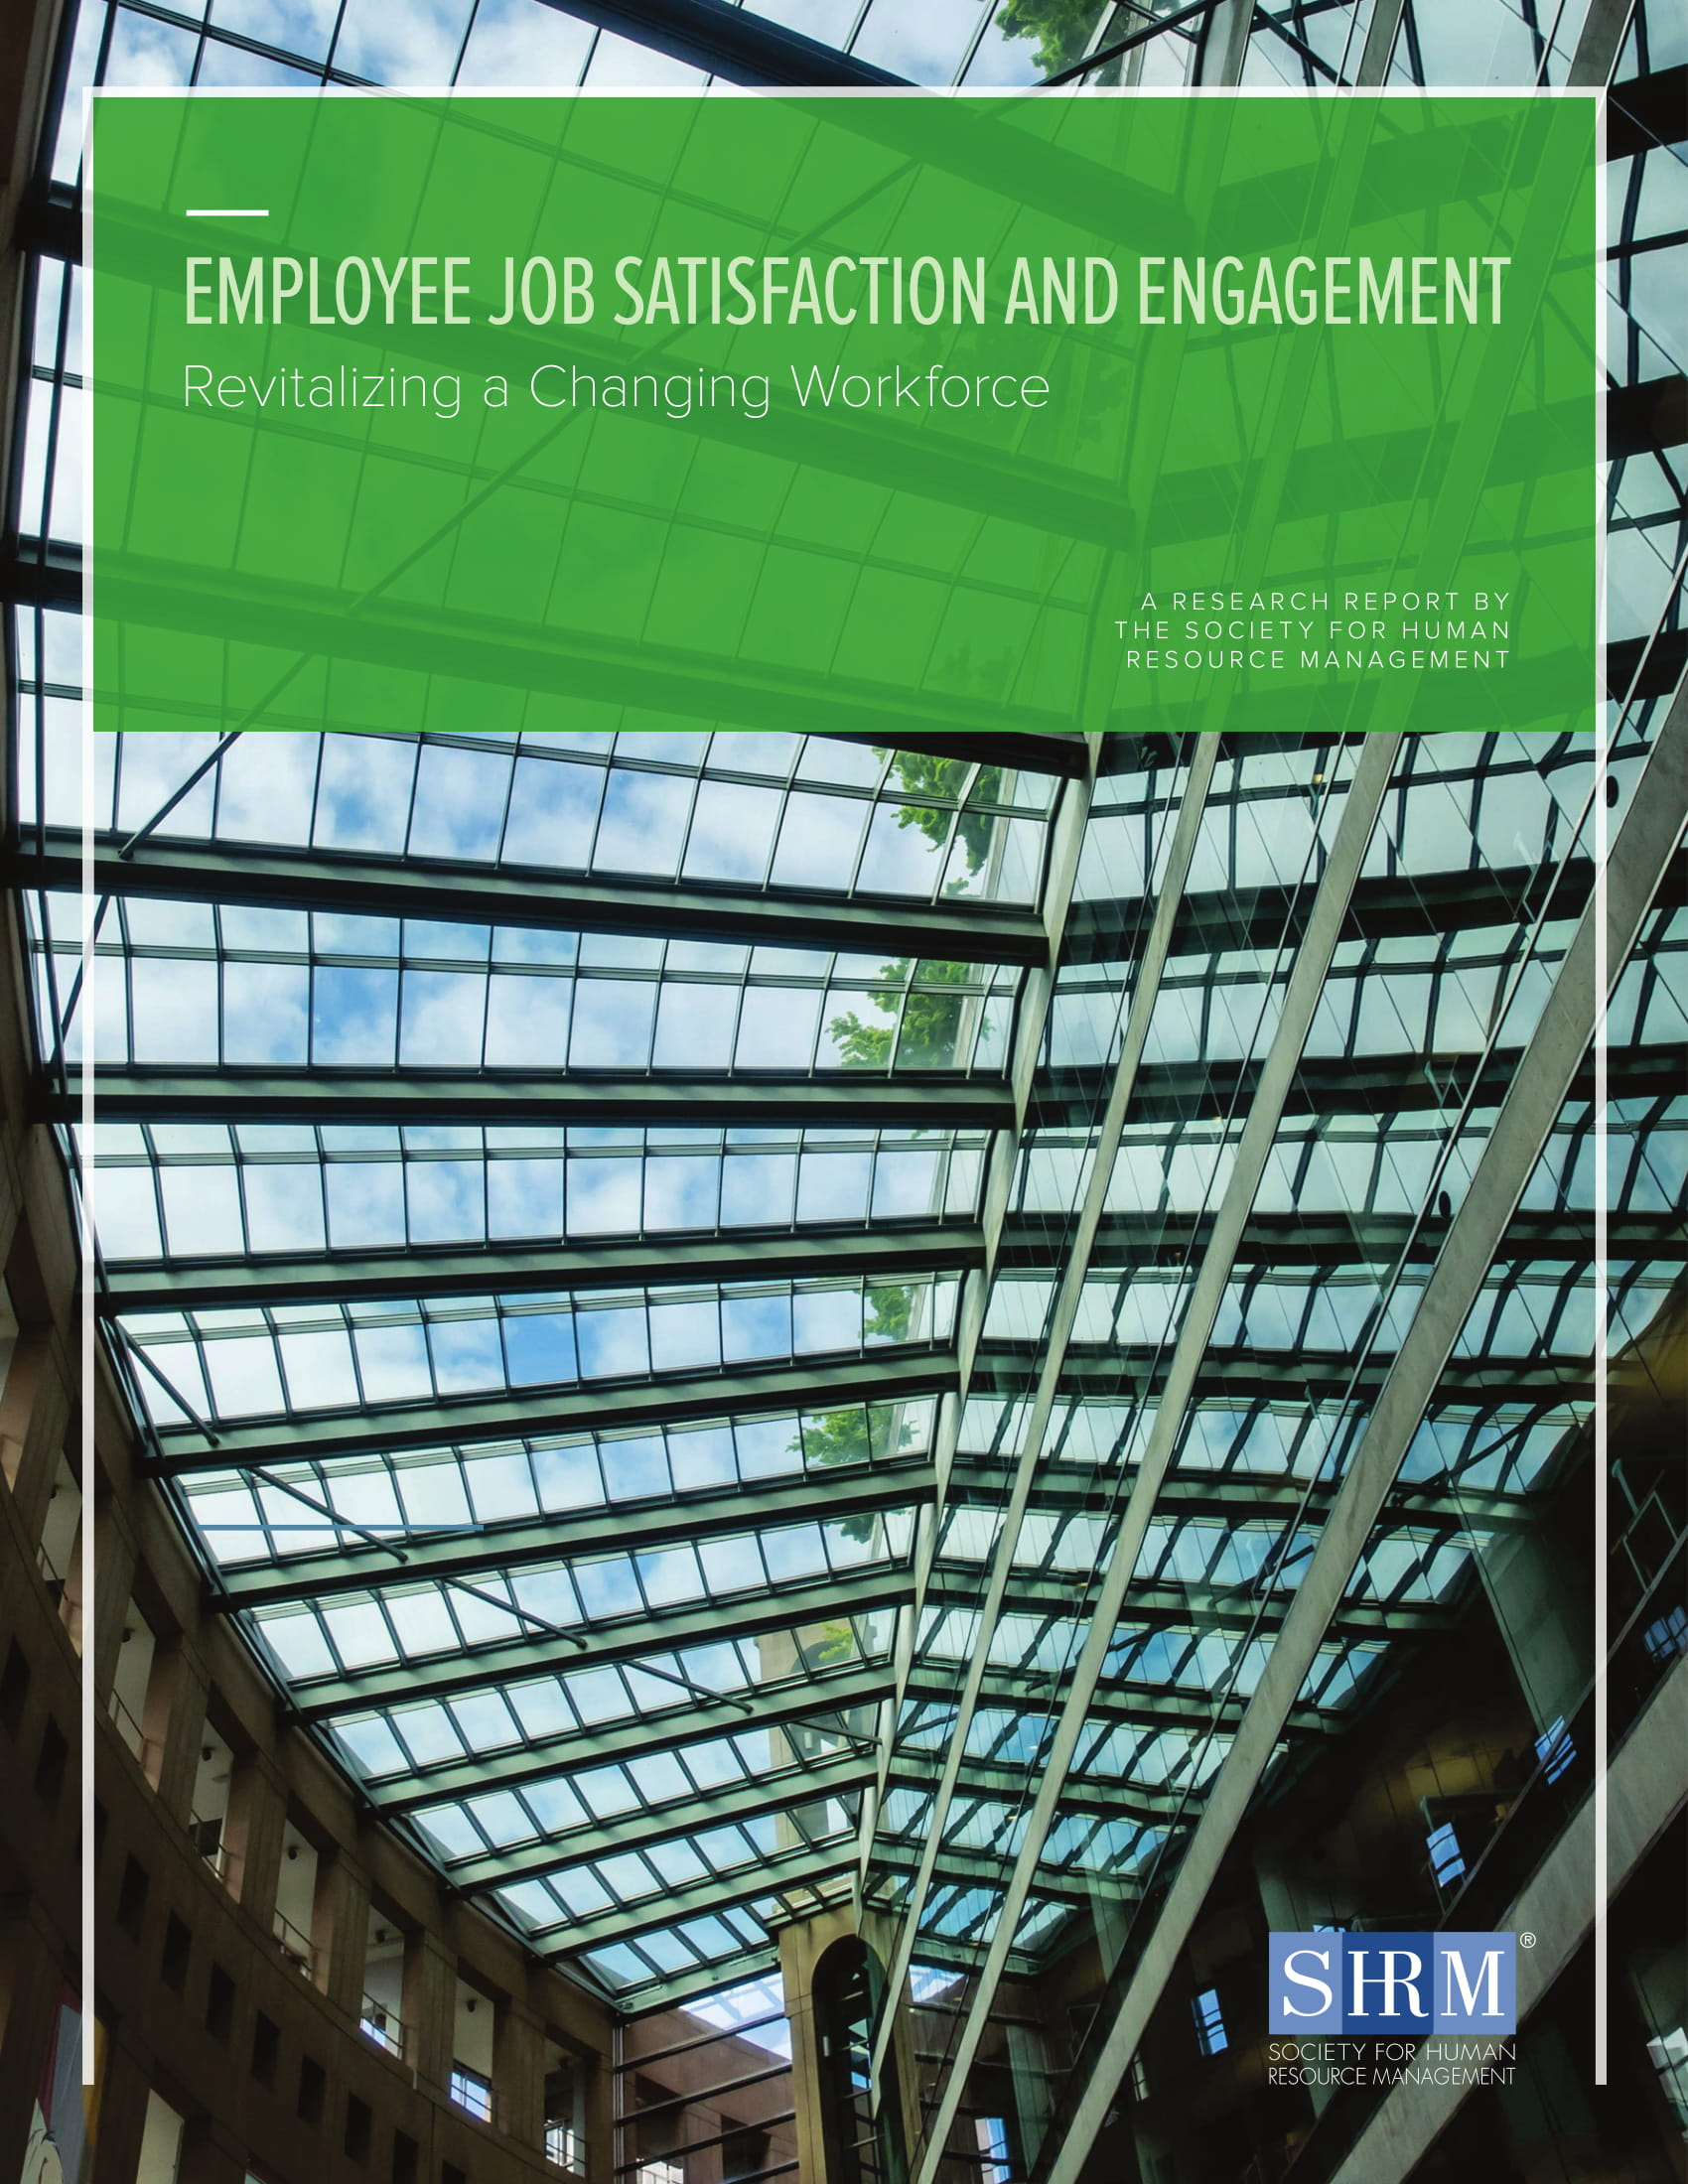 employee job satisfaction and engagement form example